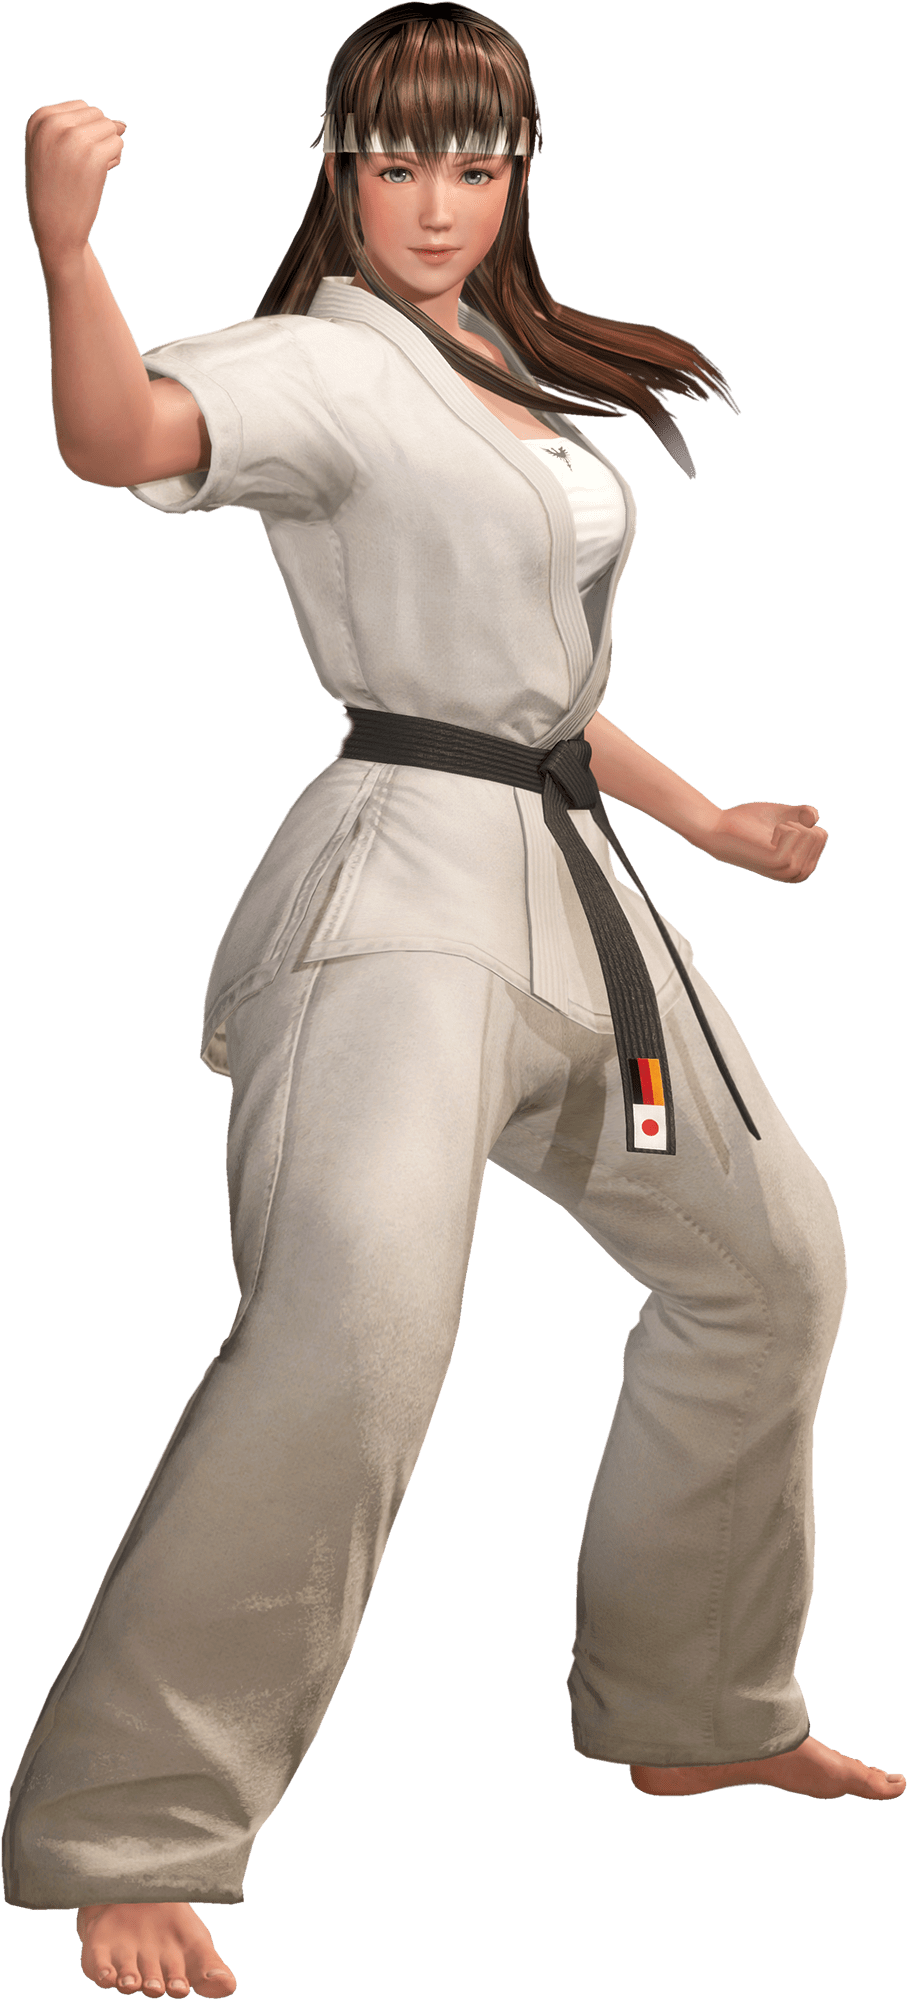 Image result for 克麗絲蒂 doa6